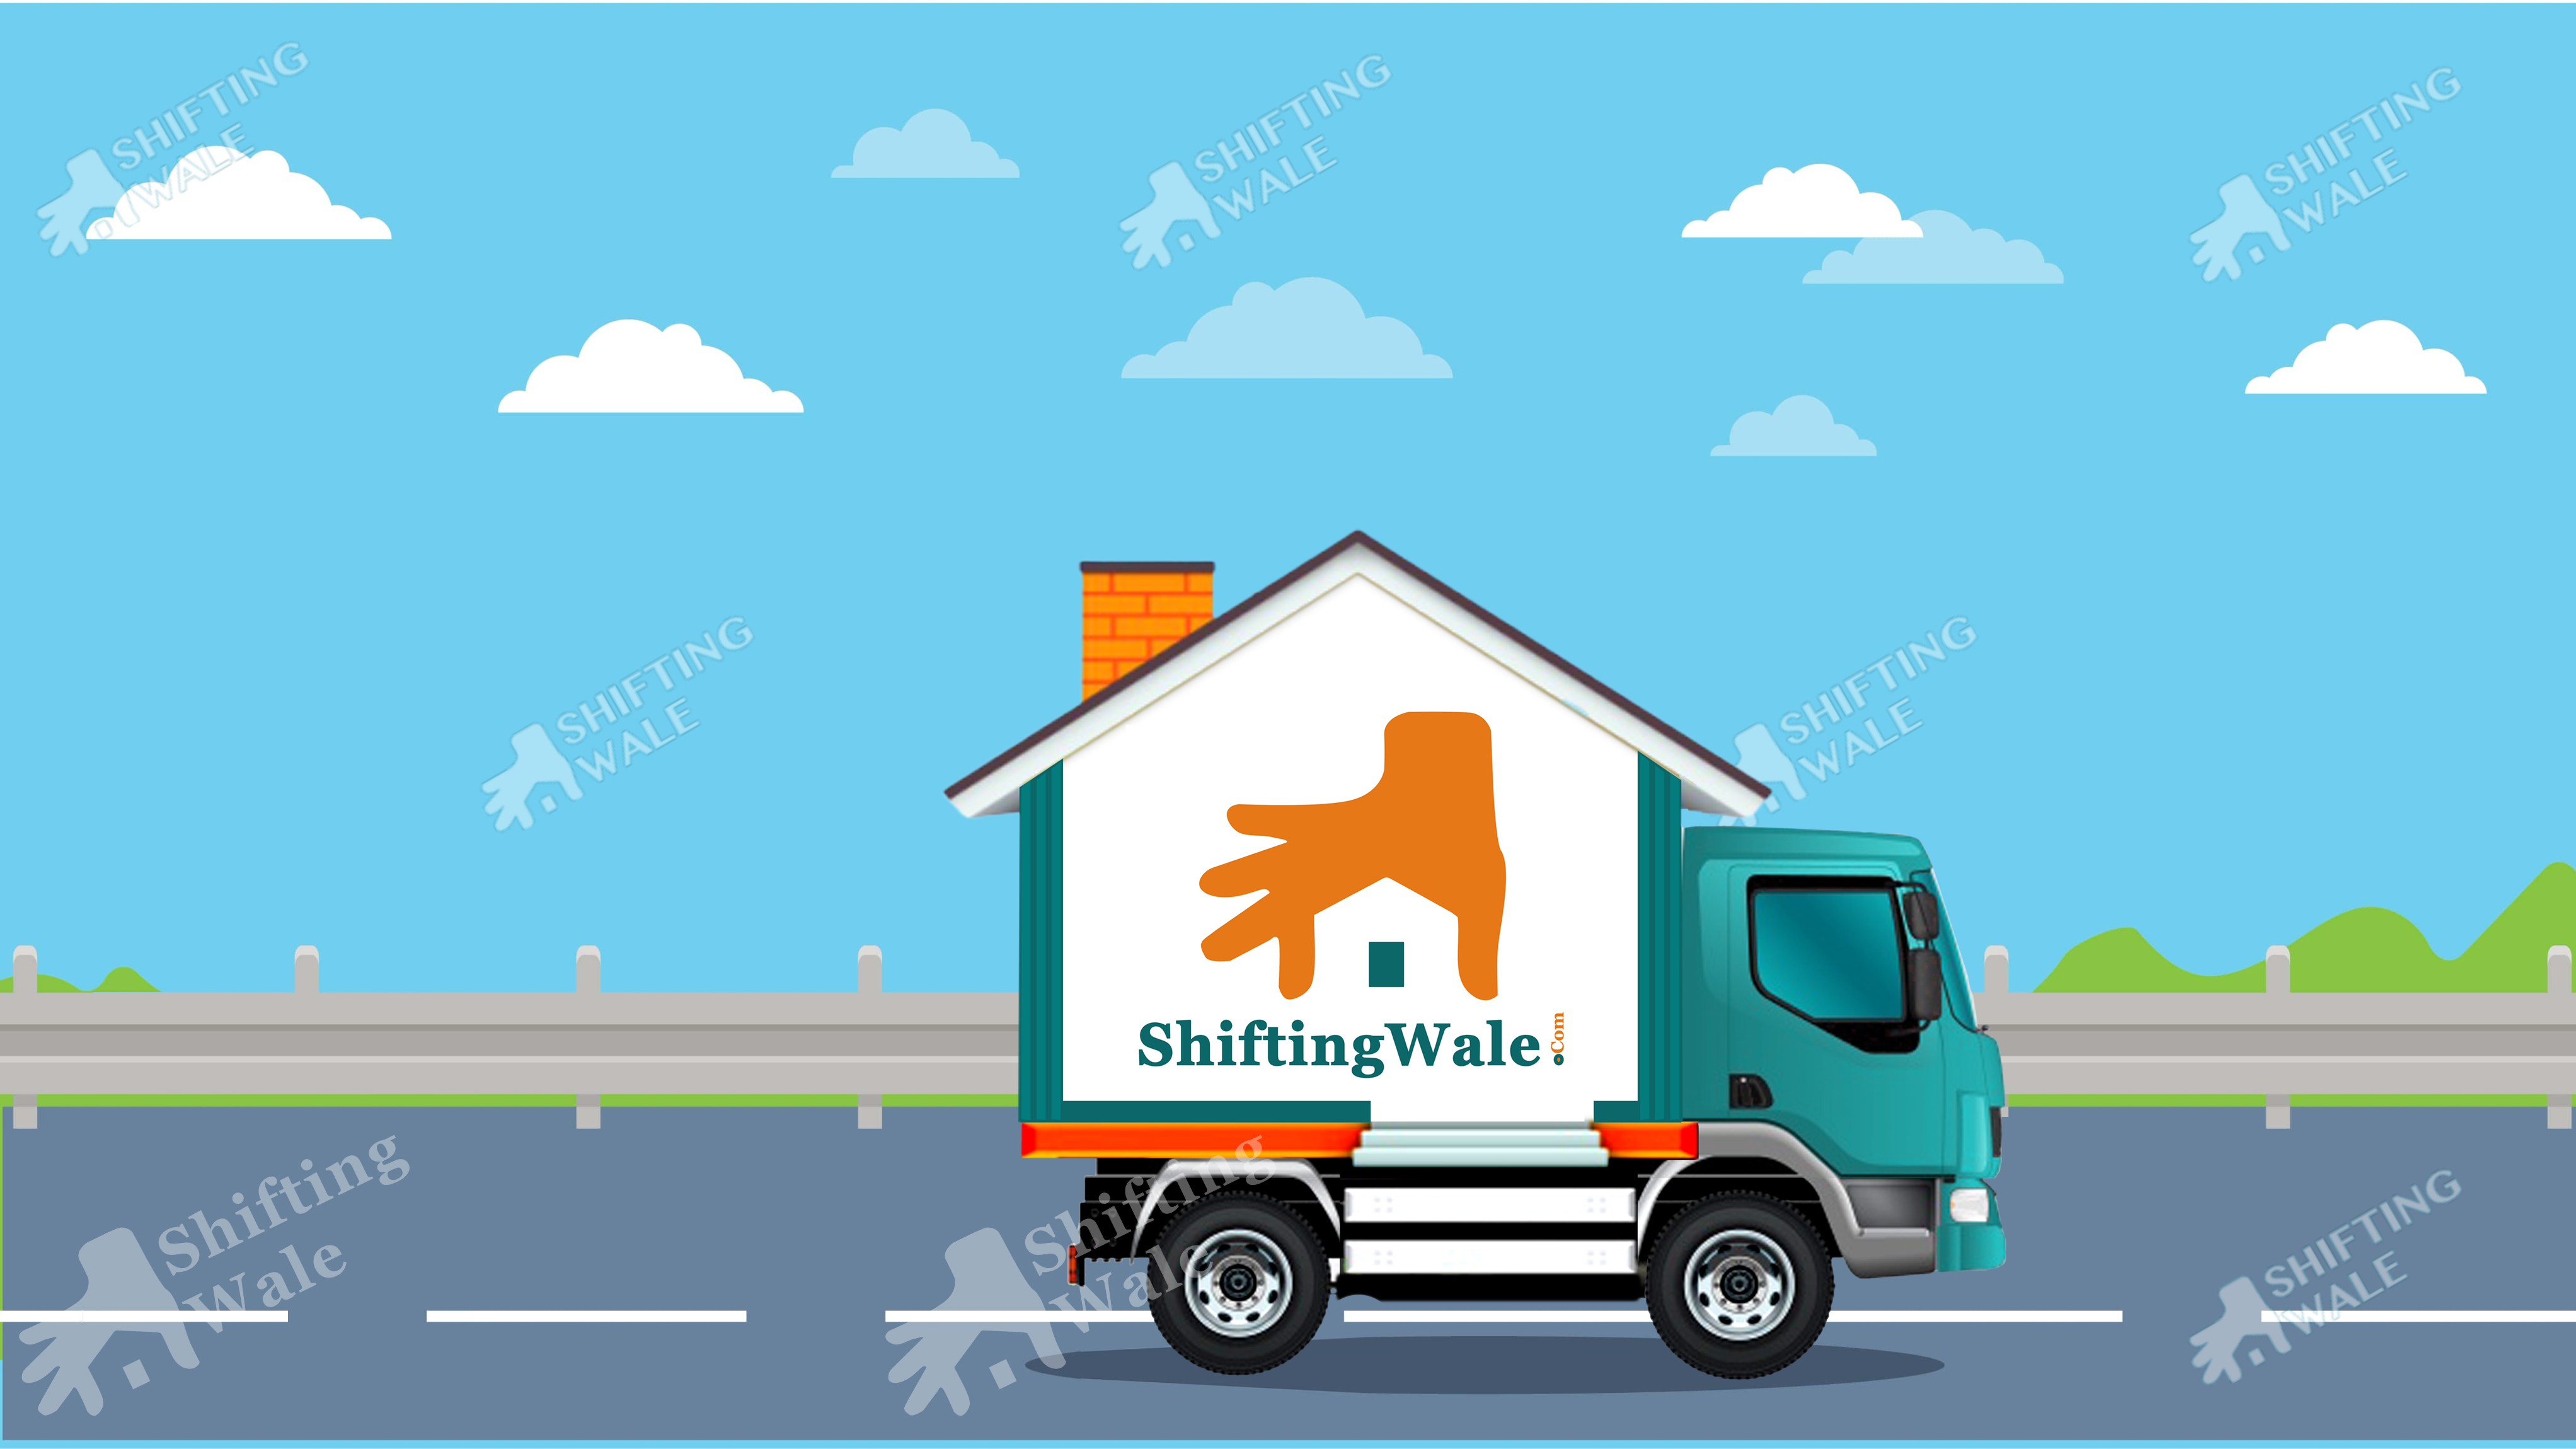 Want Packers and Movers for Household Goods Car From Delhi Gurgaon Noida Ghaziabad To Indore Bhopal Jabalpur Gwalior